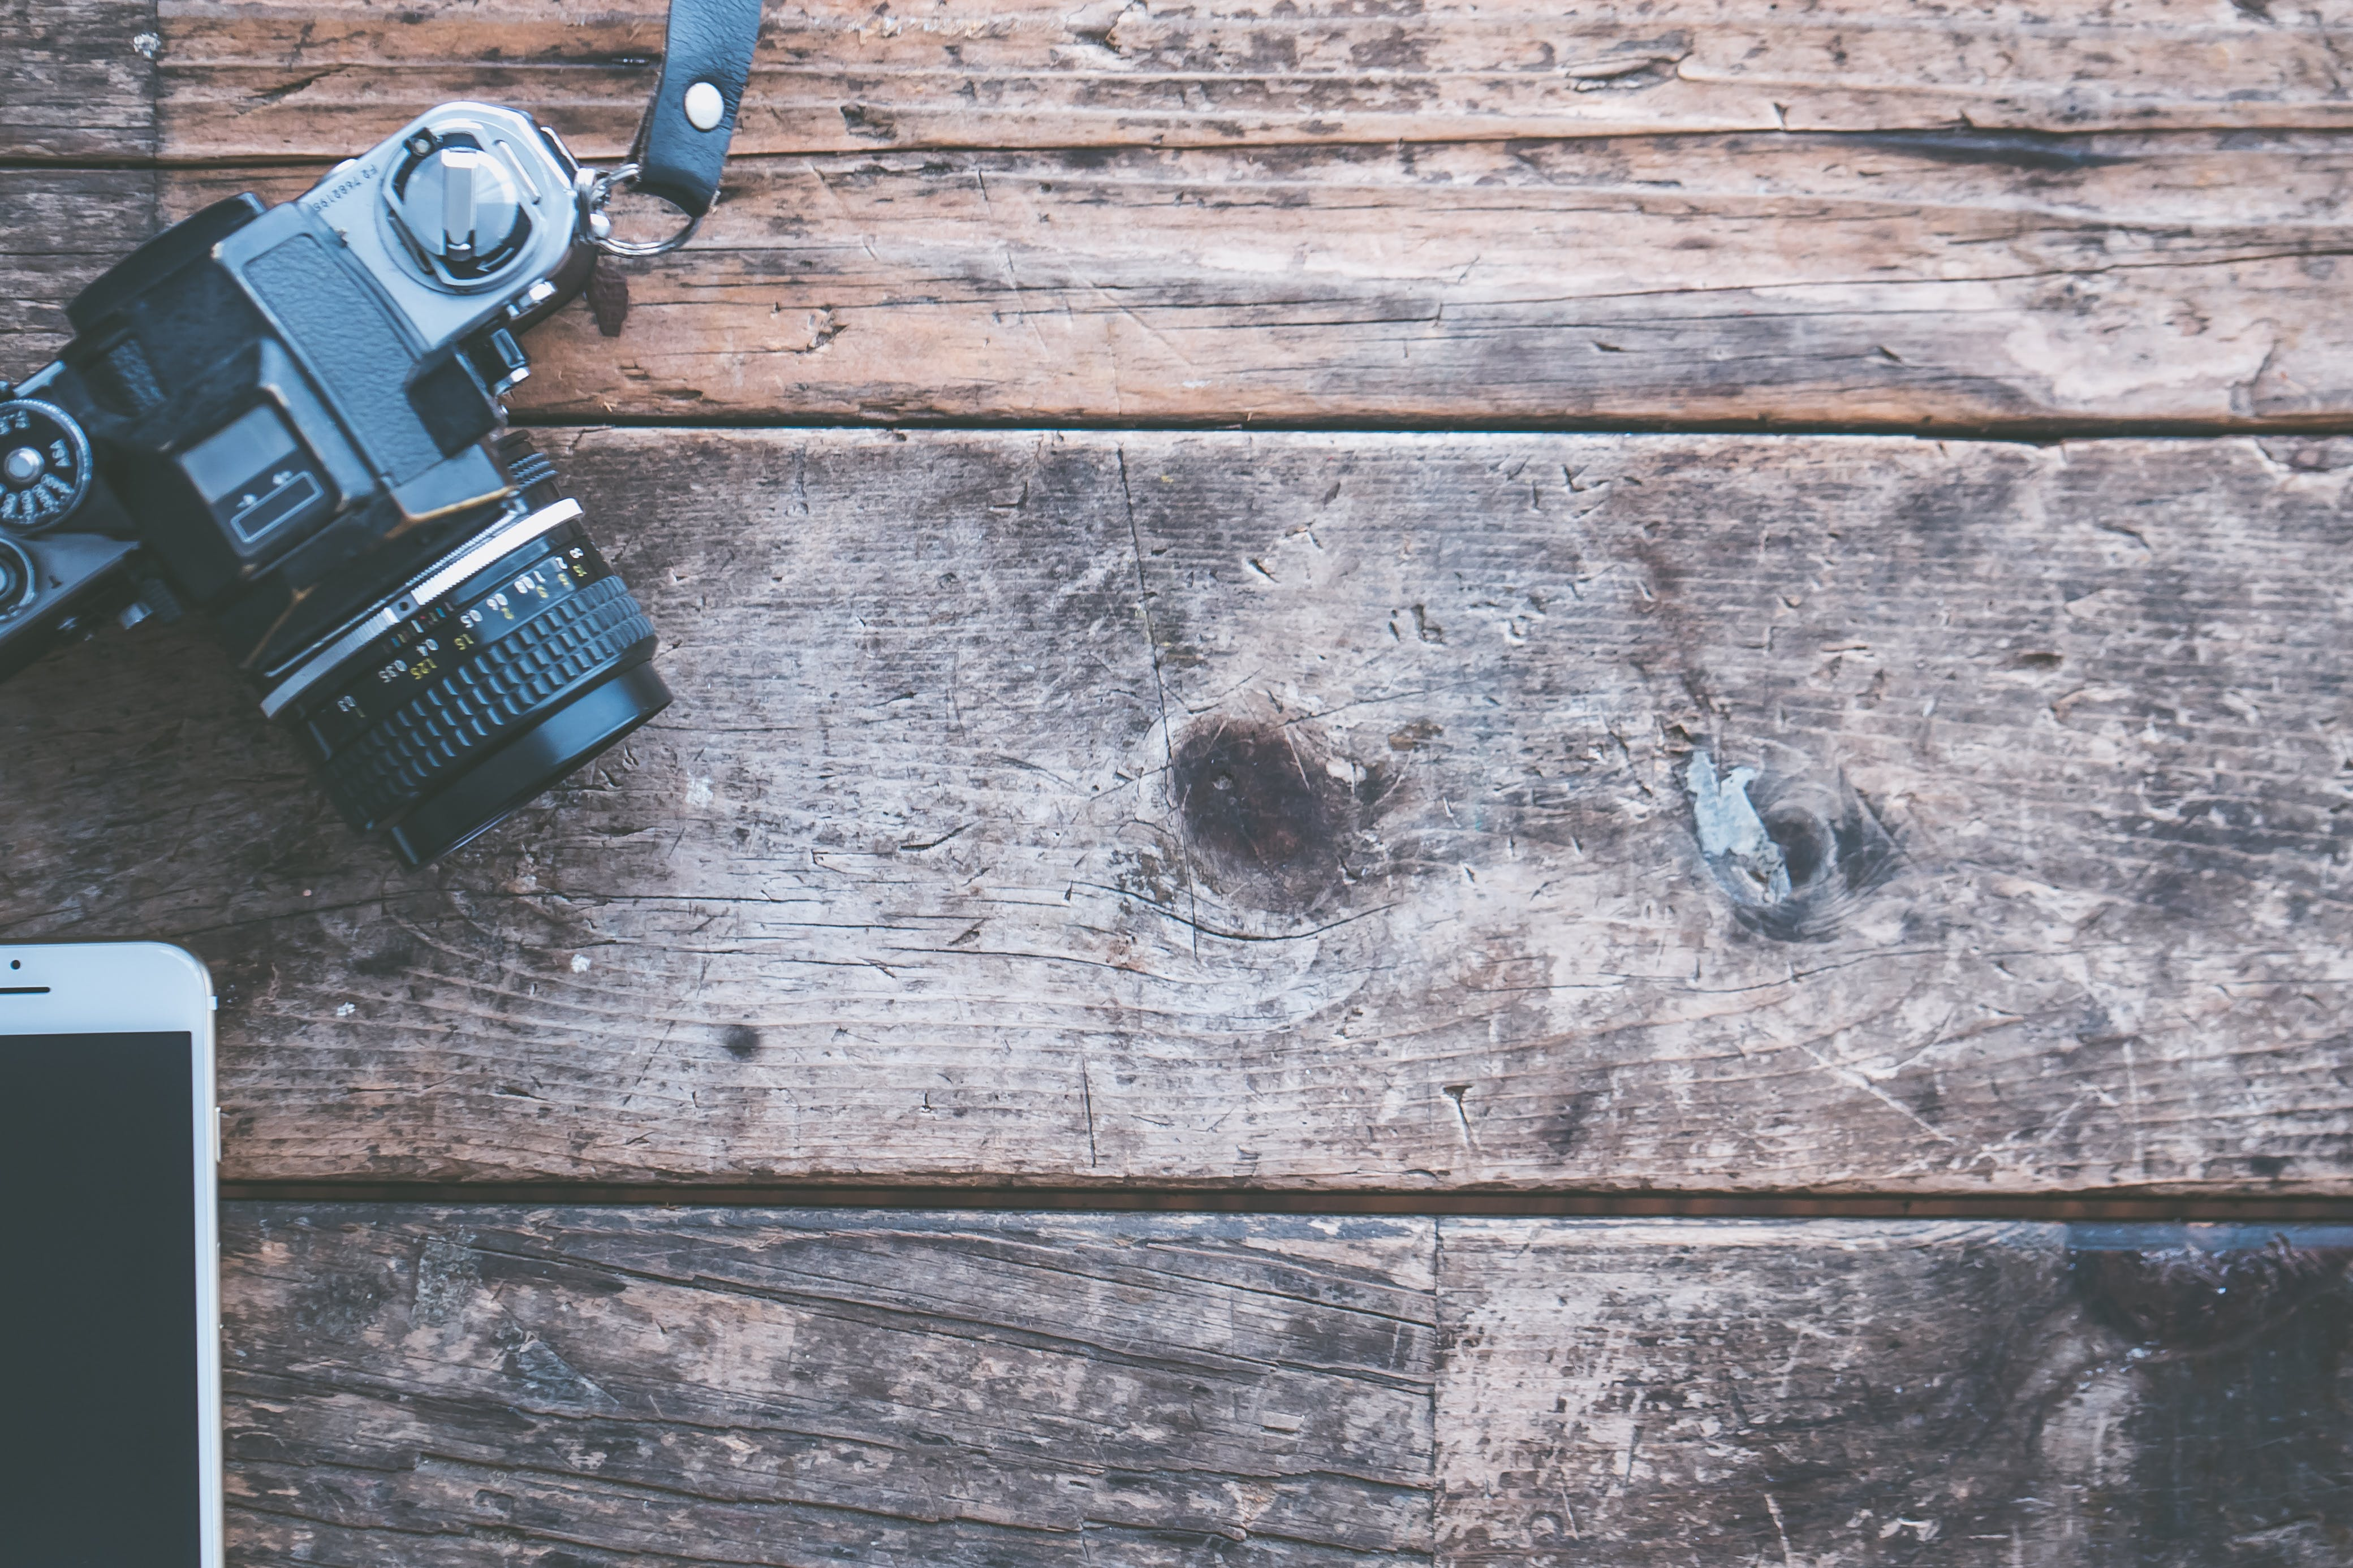 Black and Gray Dslr Camera on Brown Wooden Plank